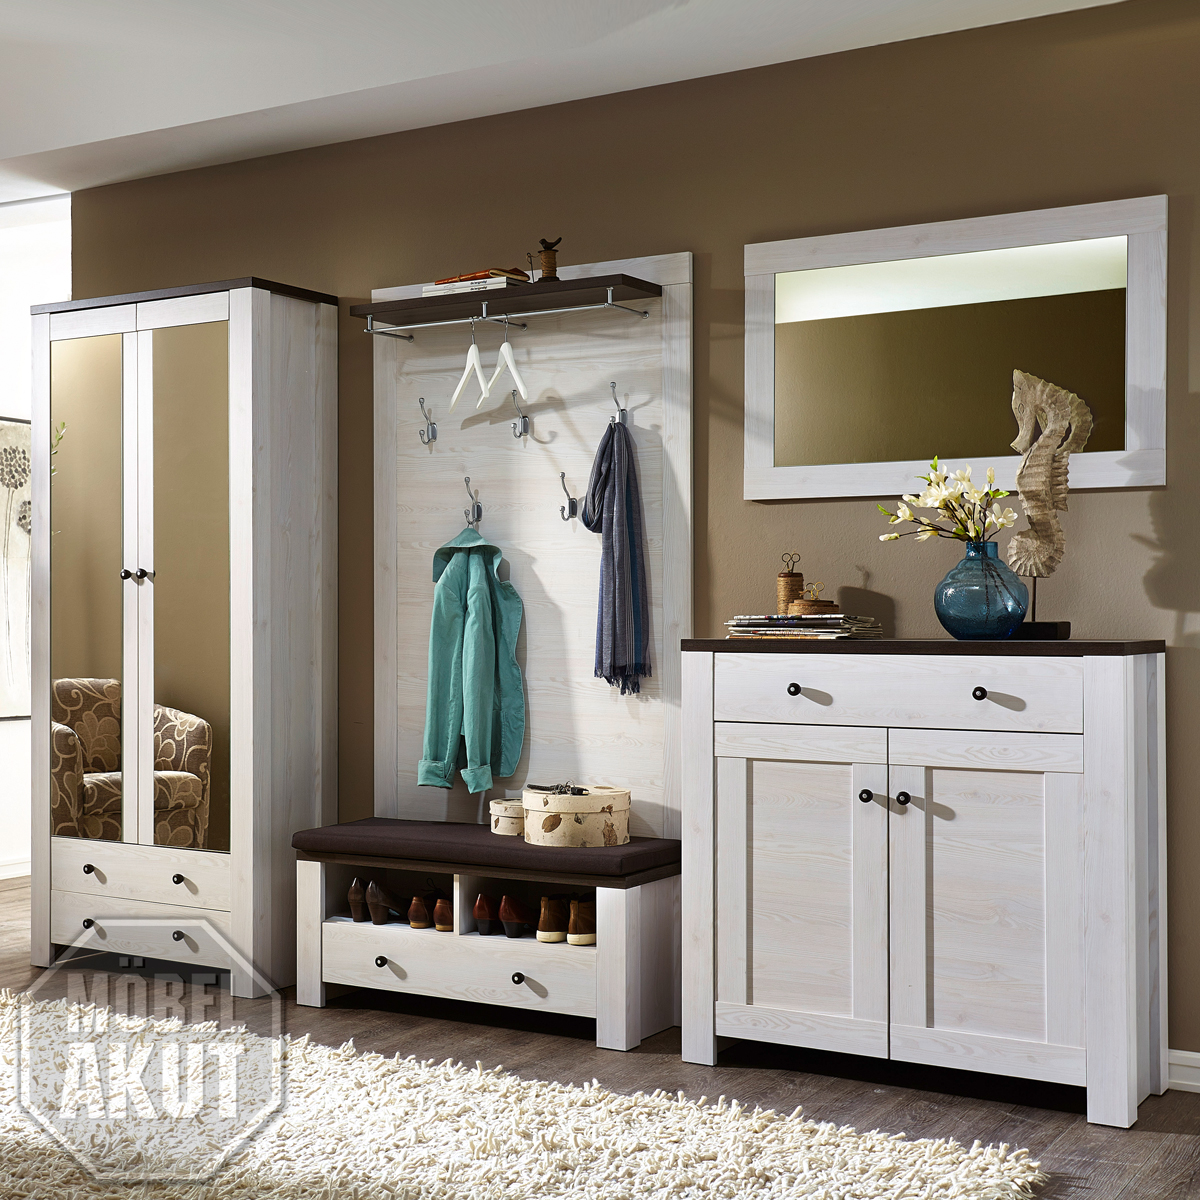 garderobe antwerpen set 1 dielenschrank schuhschrank l rche weiss pinie dunkel ebay. Black Bedroom Furniture Sets. Home Design Ideas